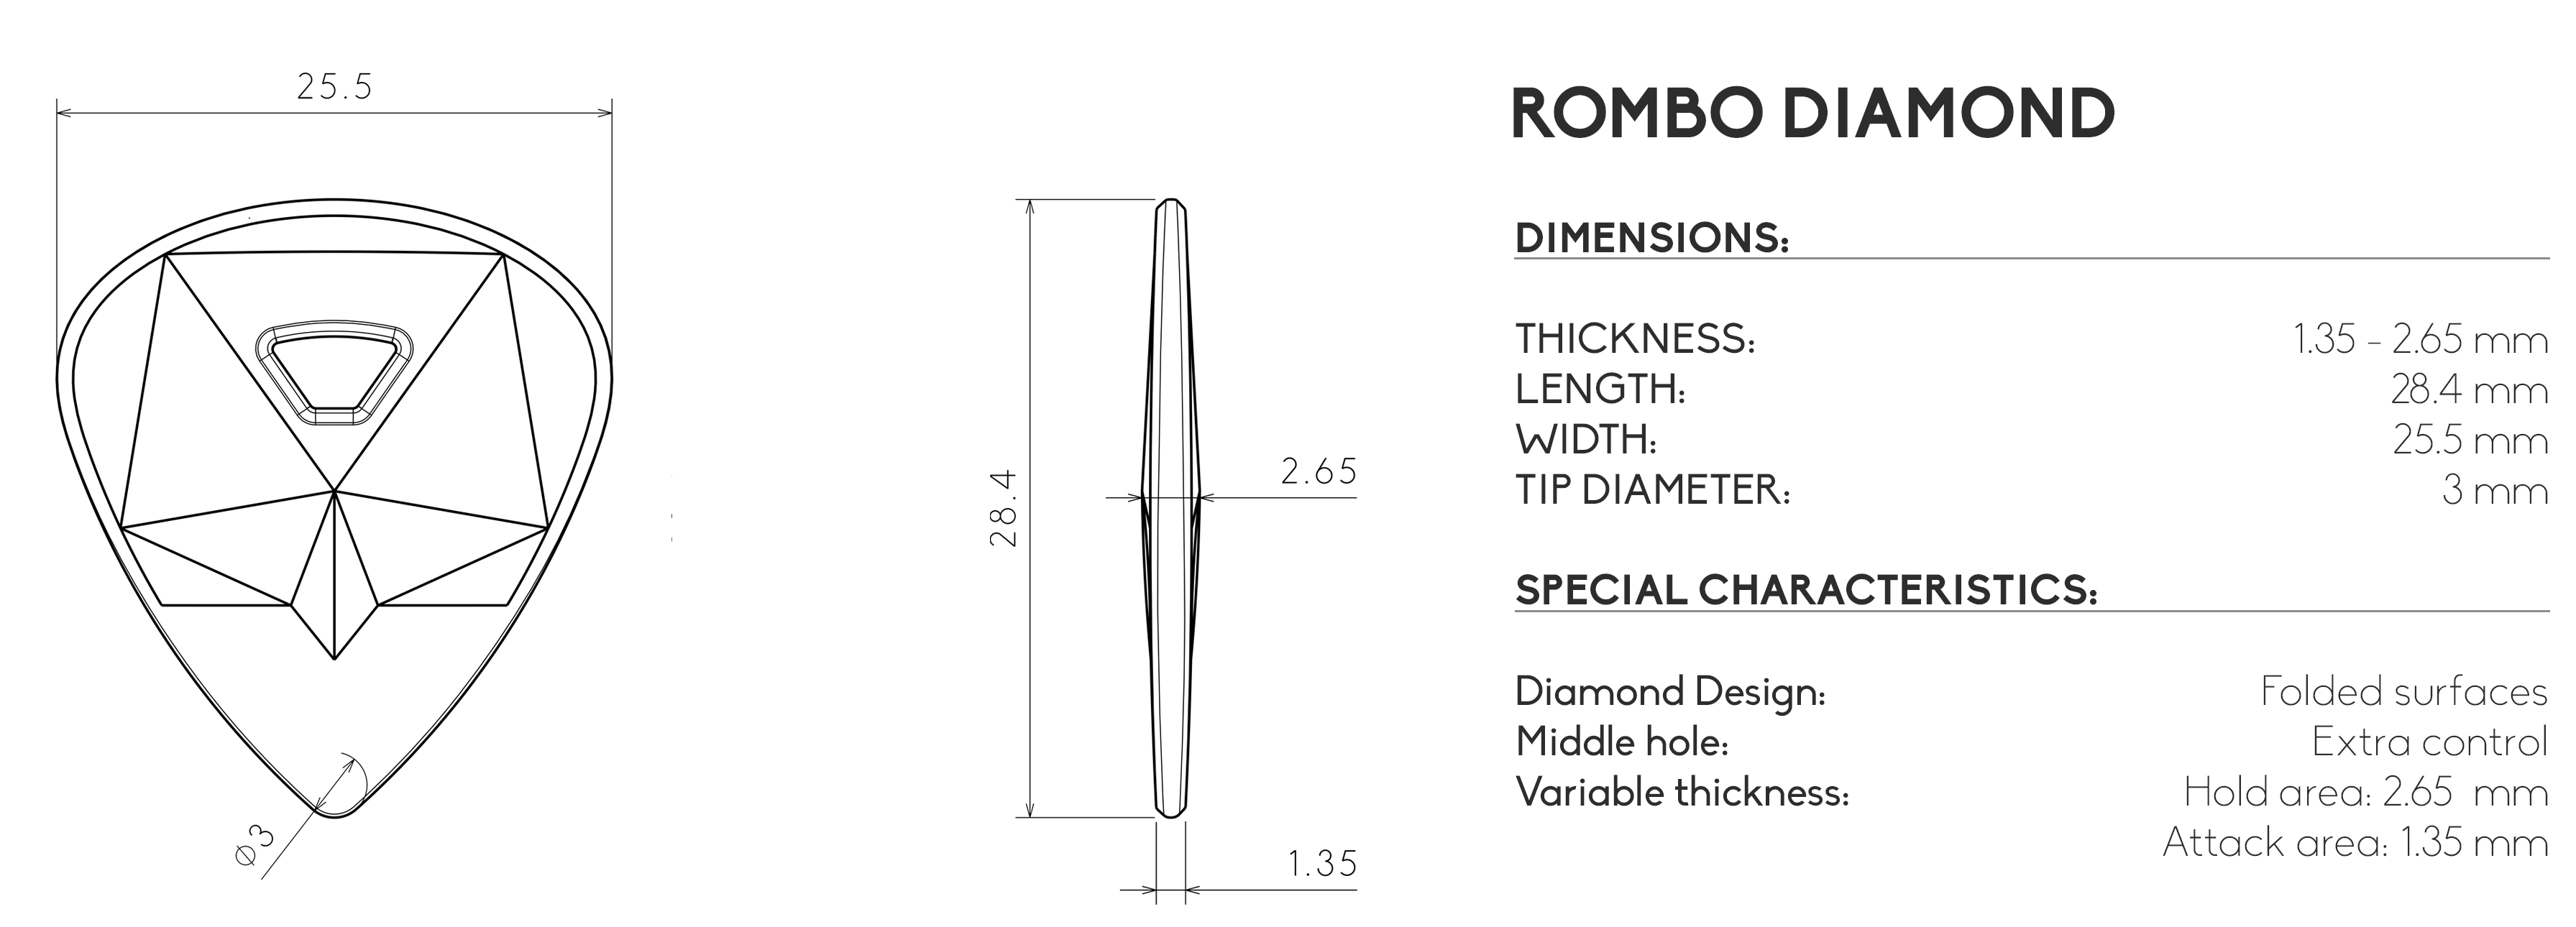 rombo guitarpick diamond